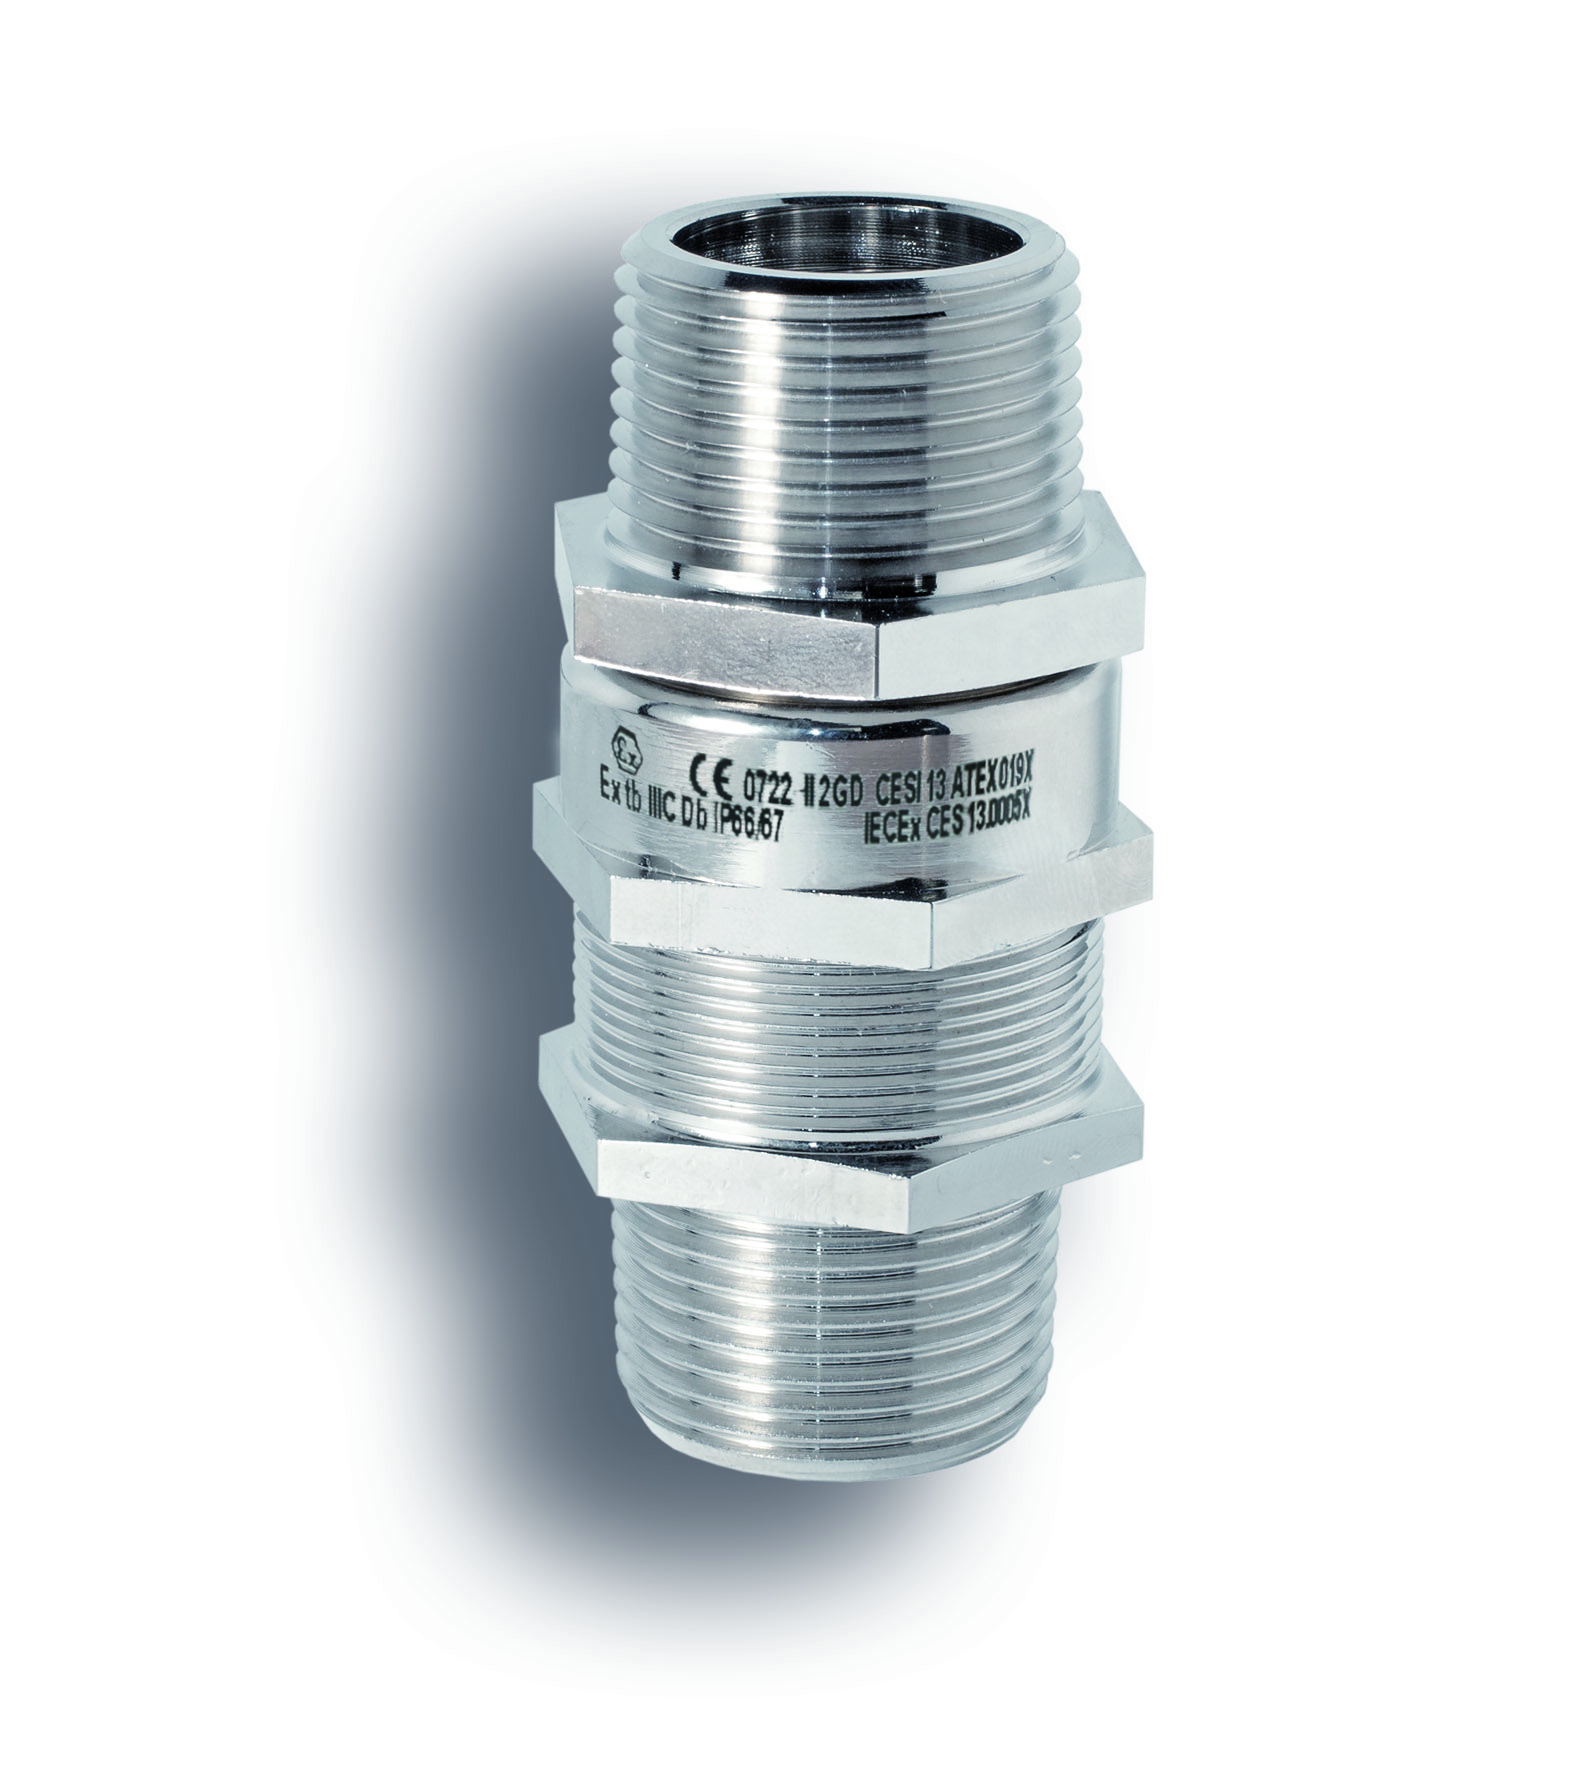 Non Armoured Cable : Revn cable glands for non armoured cables with a male